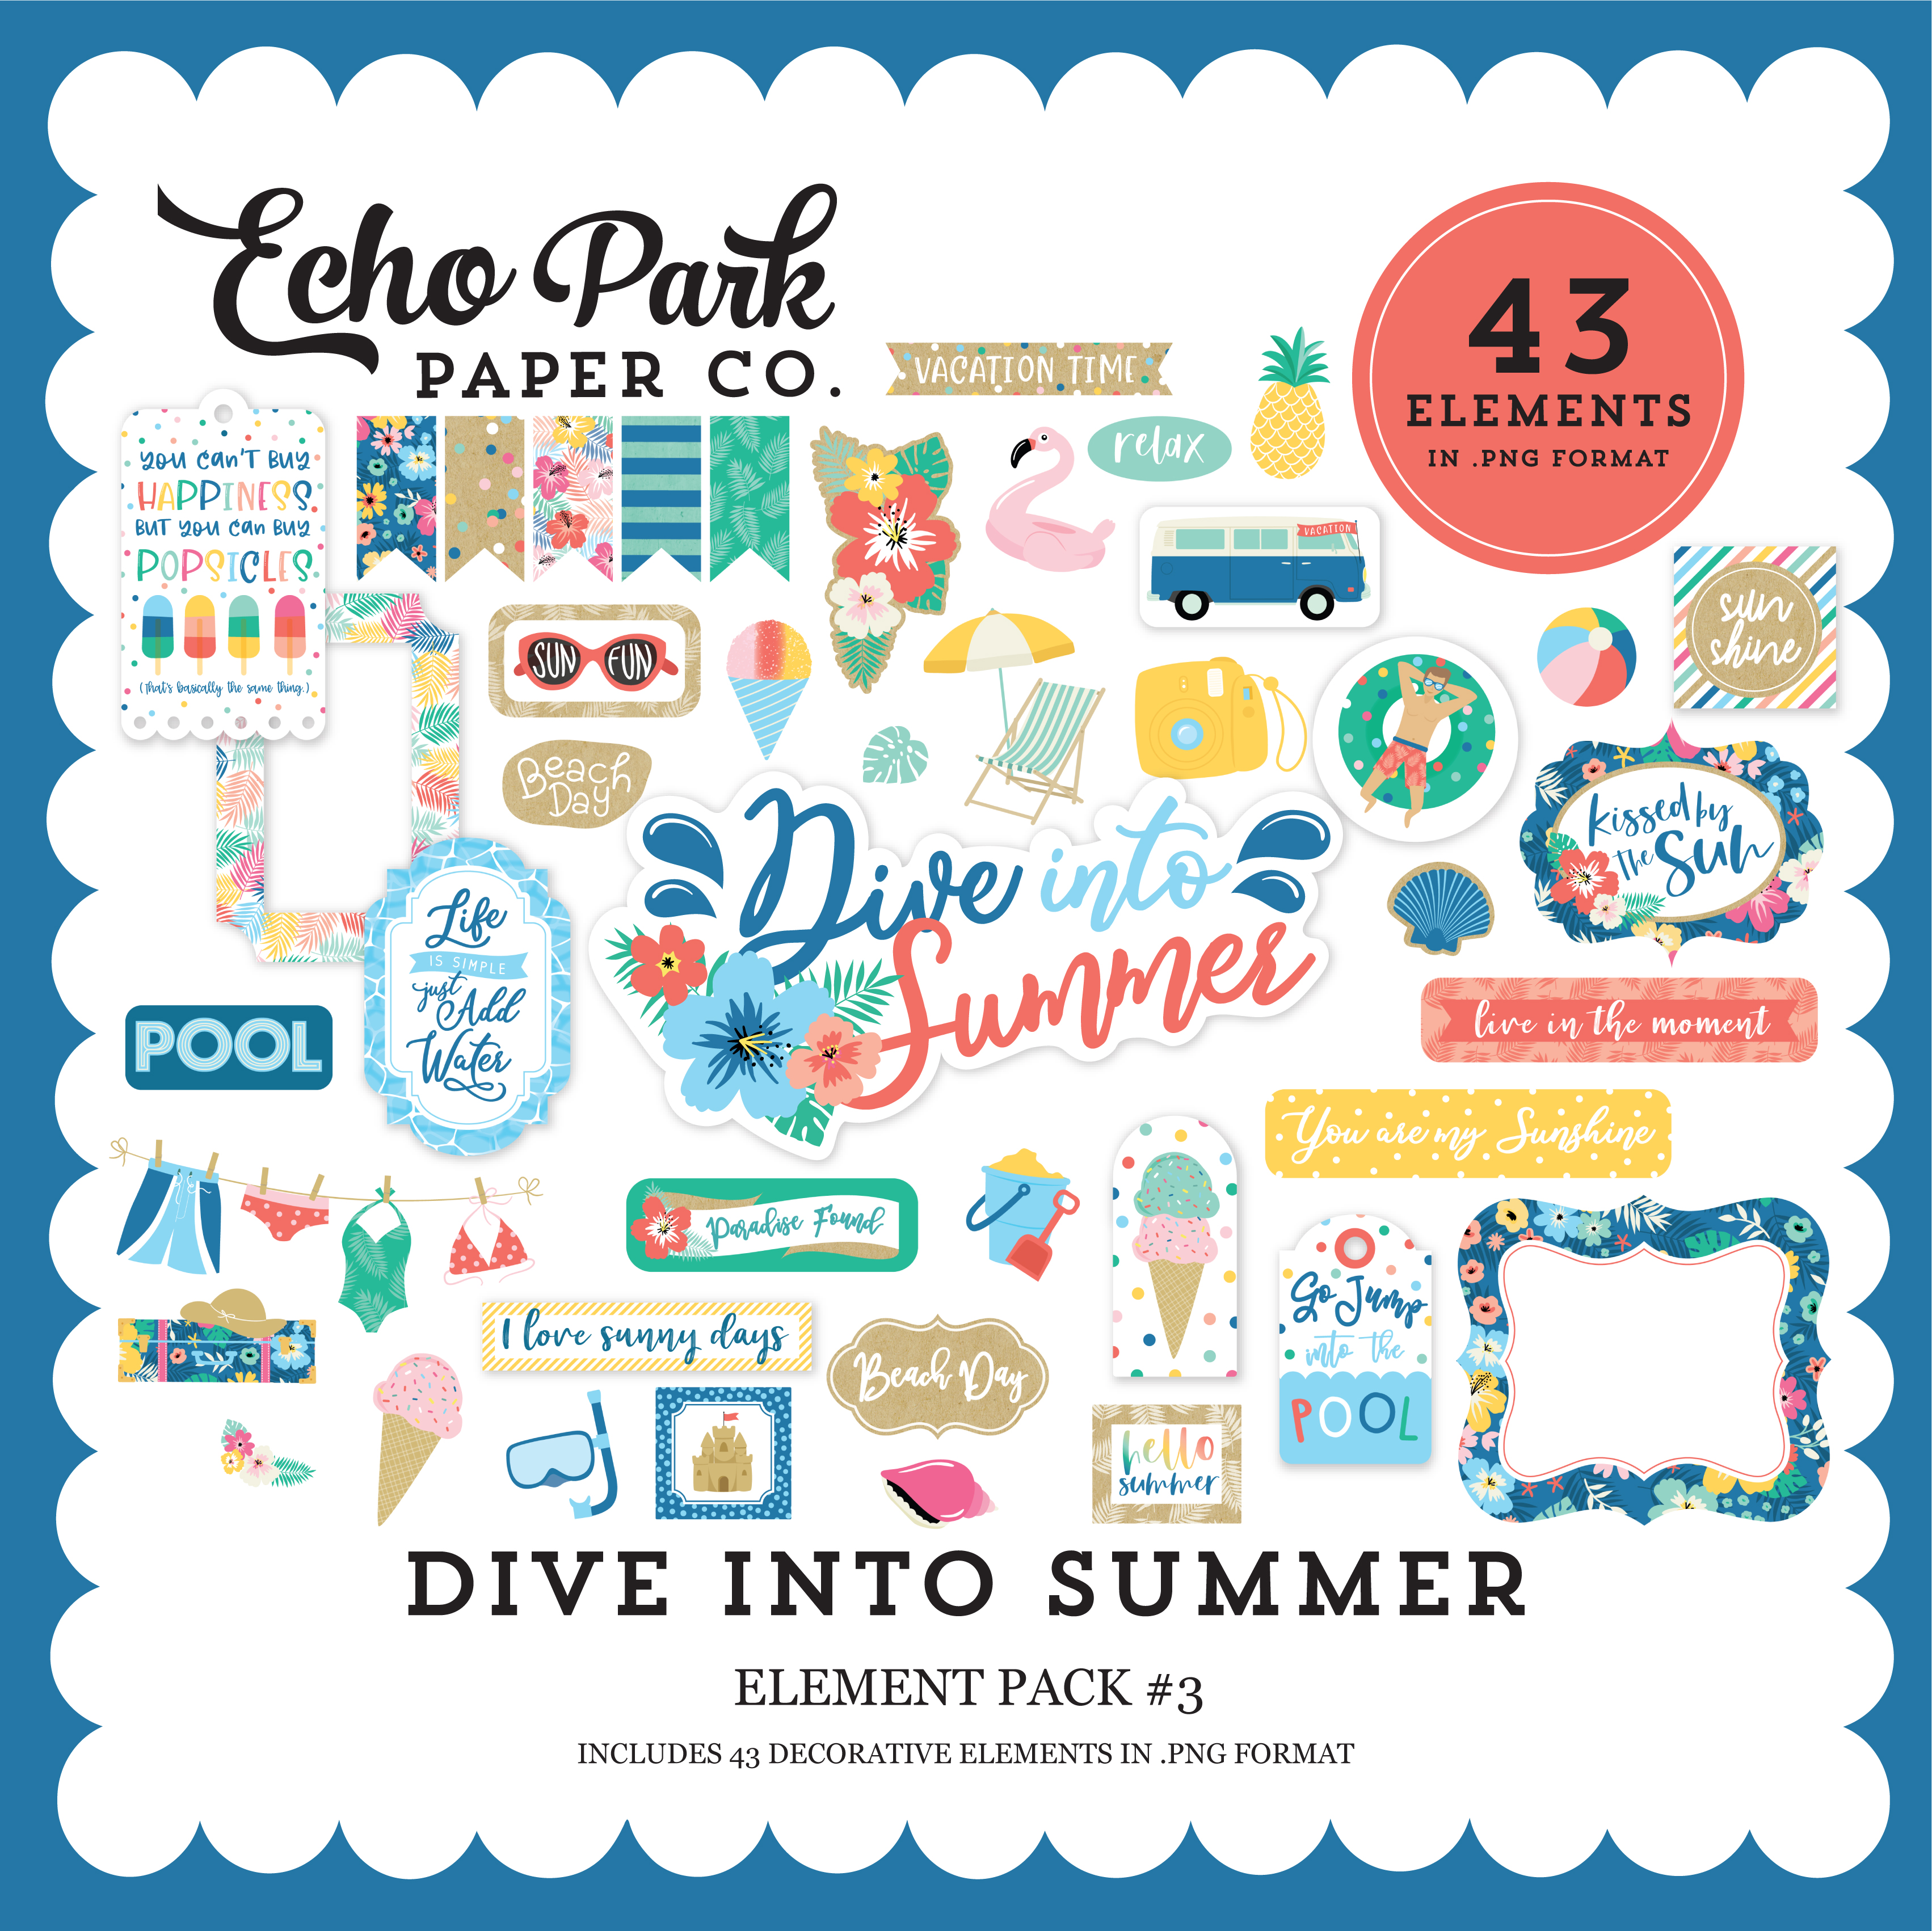 Dive Into Summer Element Pack #3